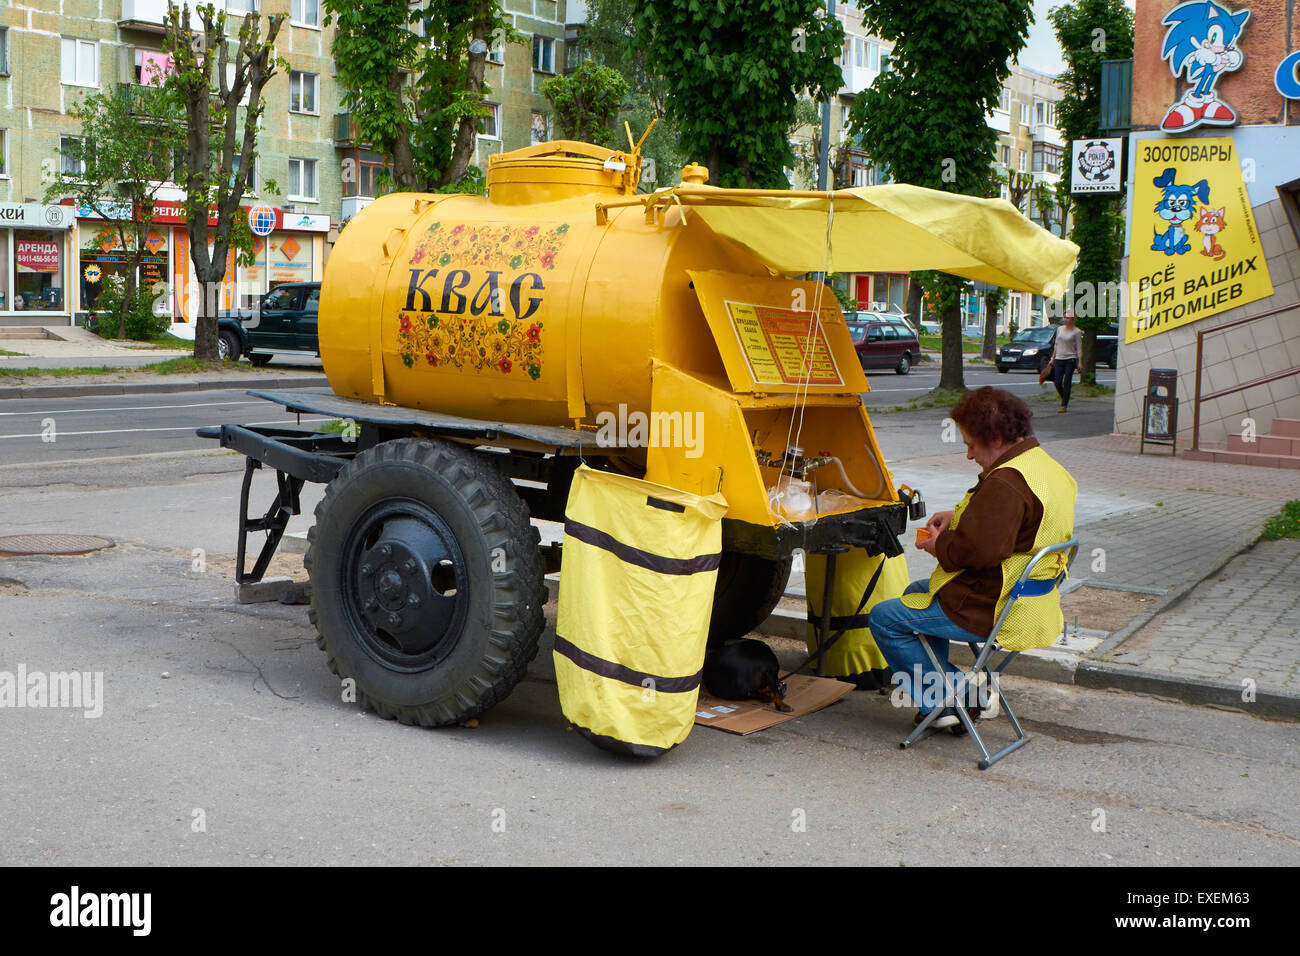 KALININGRAD, RUSSIA - MAY 19, 2015: Trading national Russian drink kvass on  the streets of the city